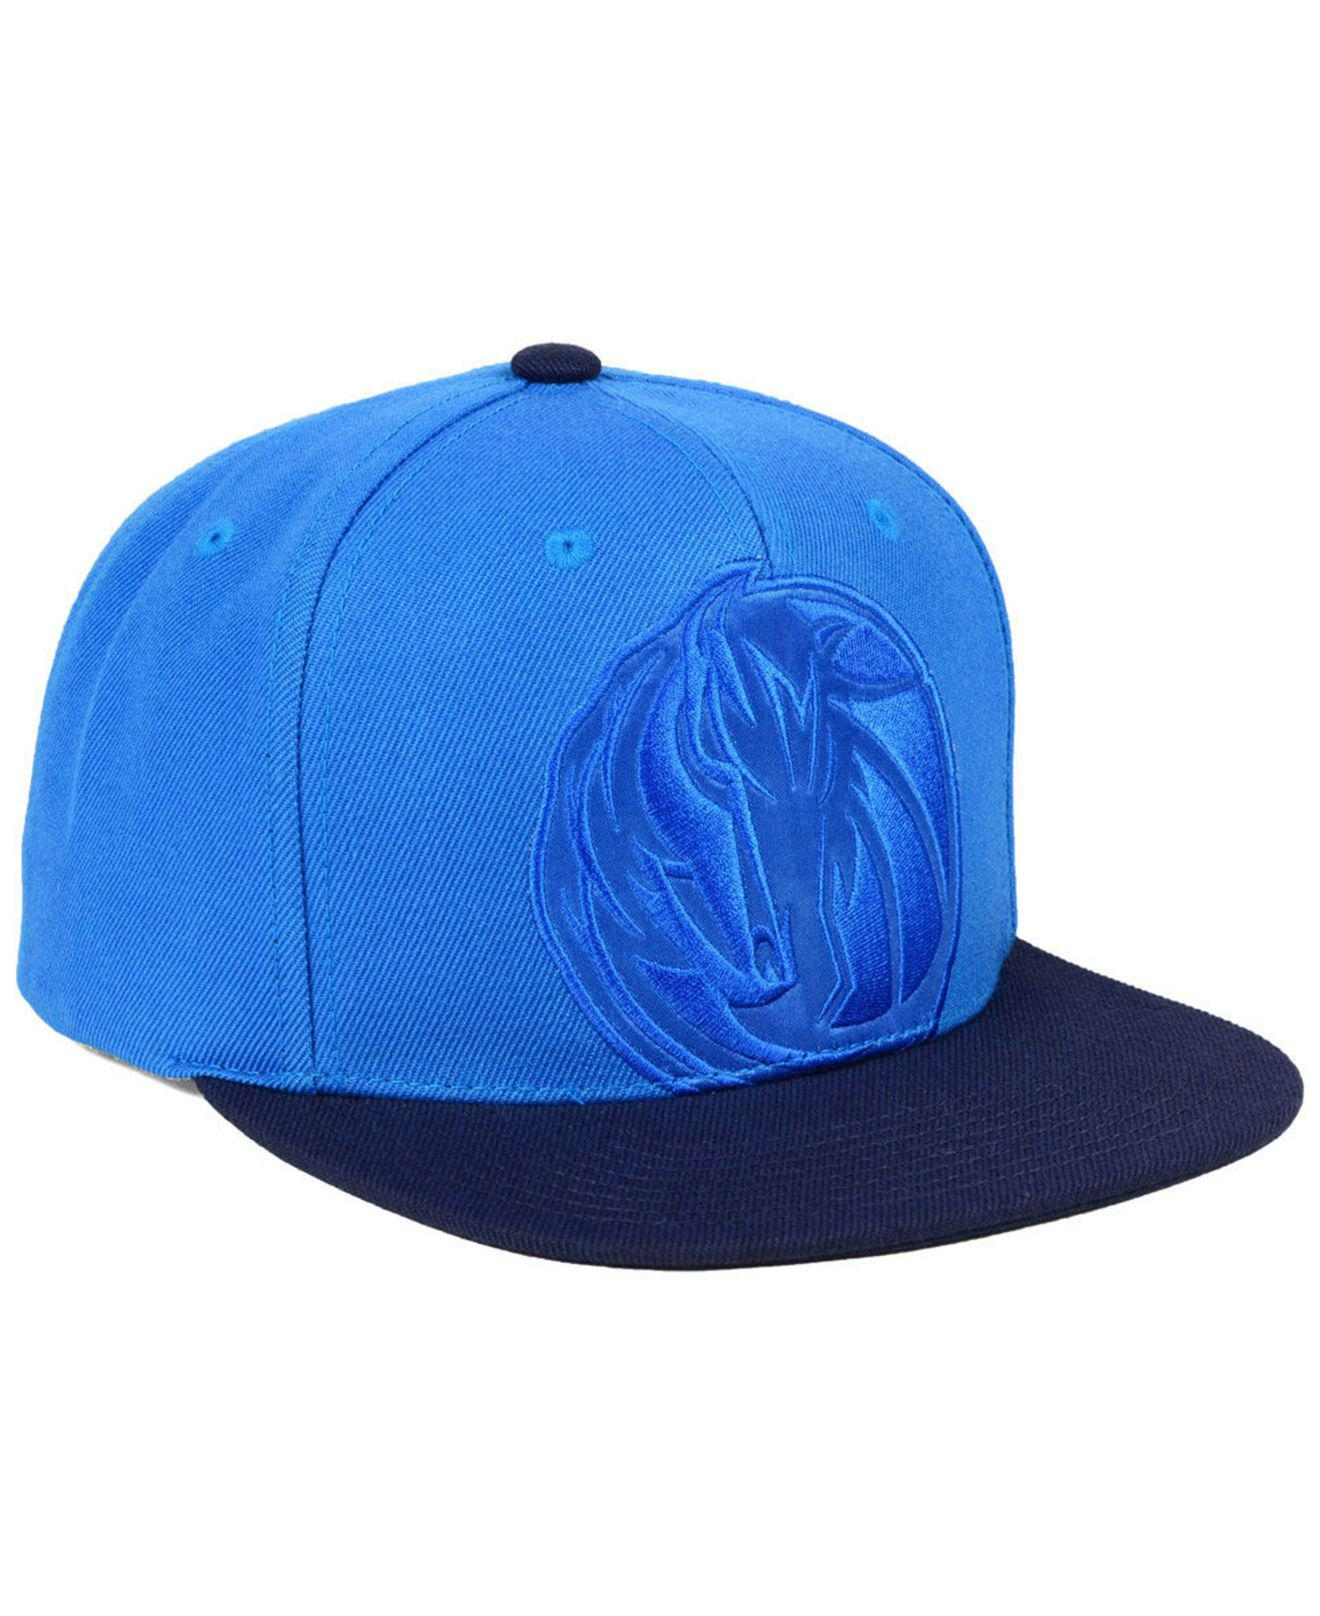 differently e6dfb 3473a Mitchell   Ness Dallas Mavericks Cropped Satin Snapback Cap in Blue ...